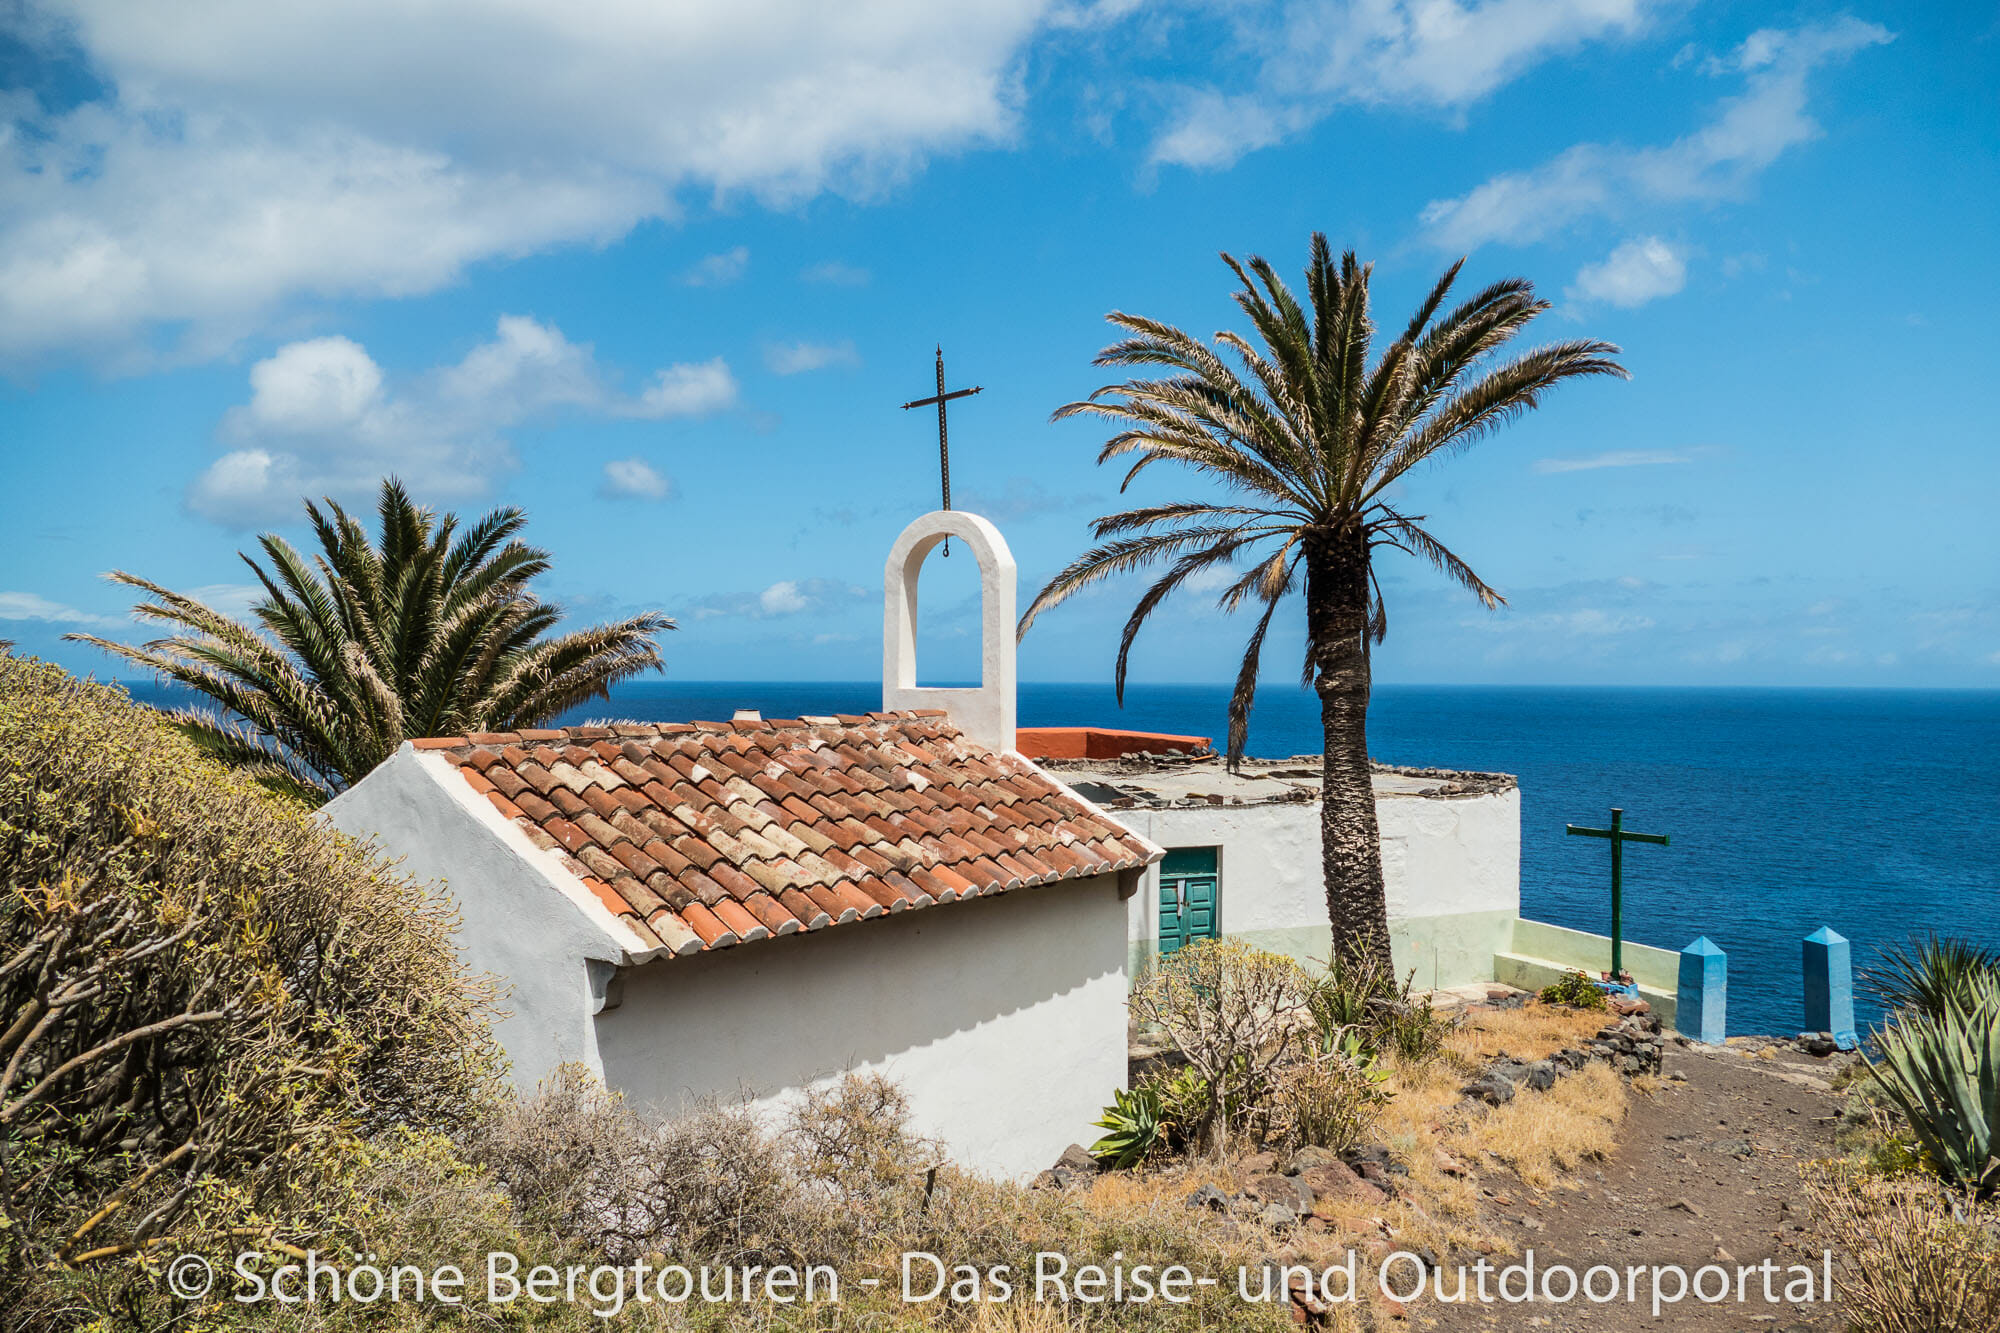 Outset Alleine Reisen Teneriffa numbers sessions could